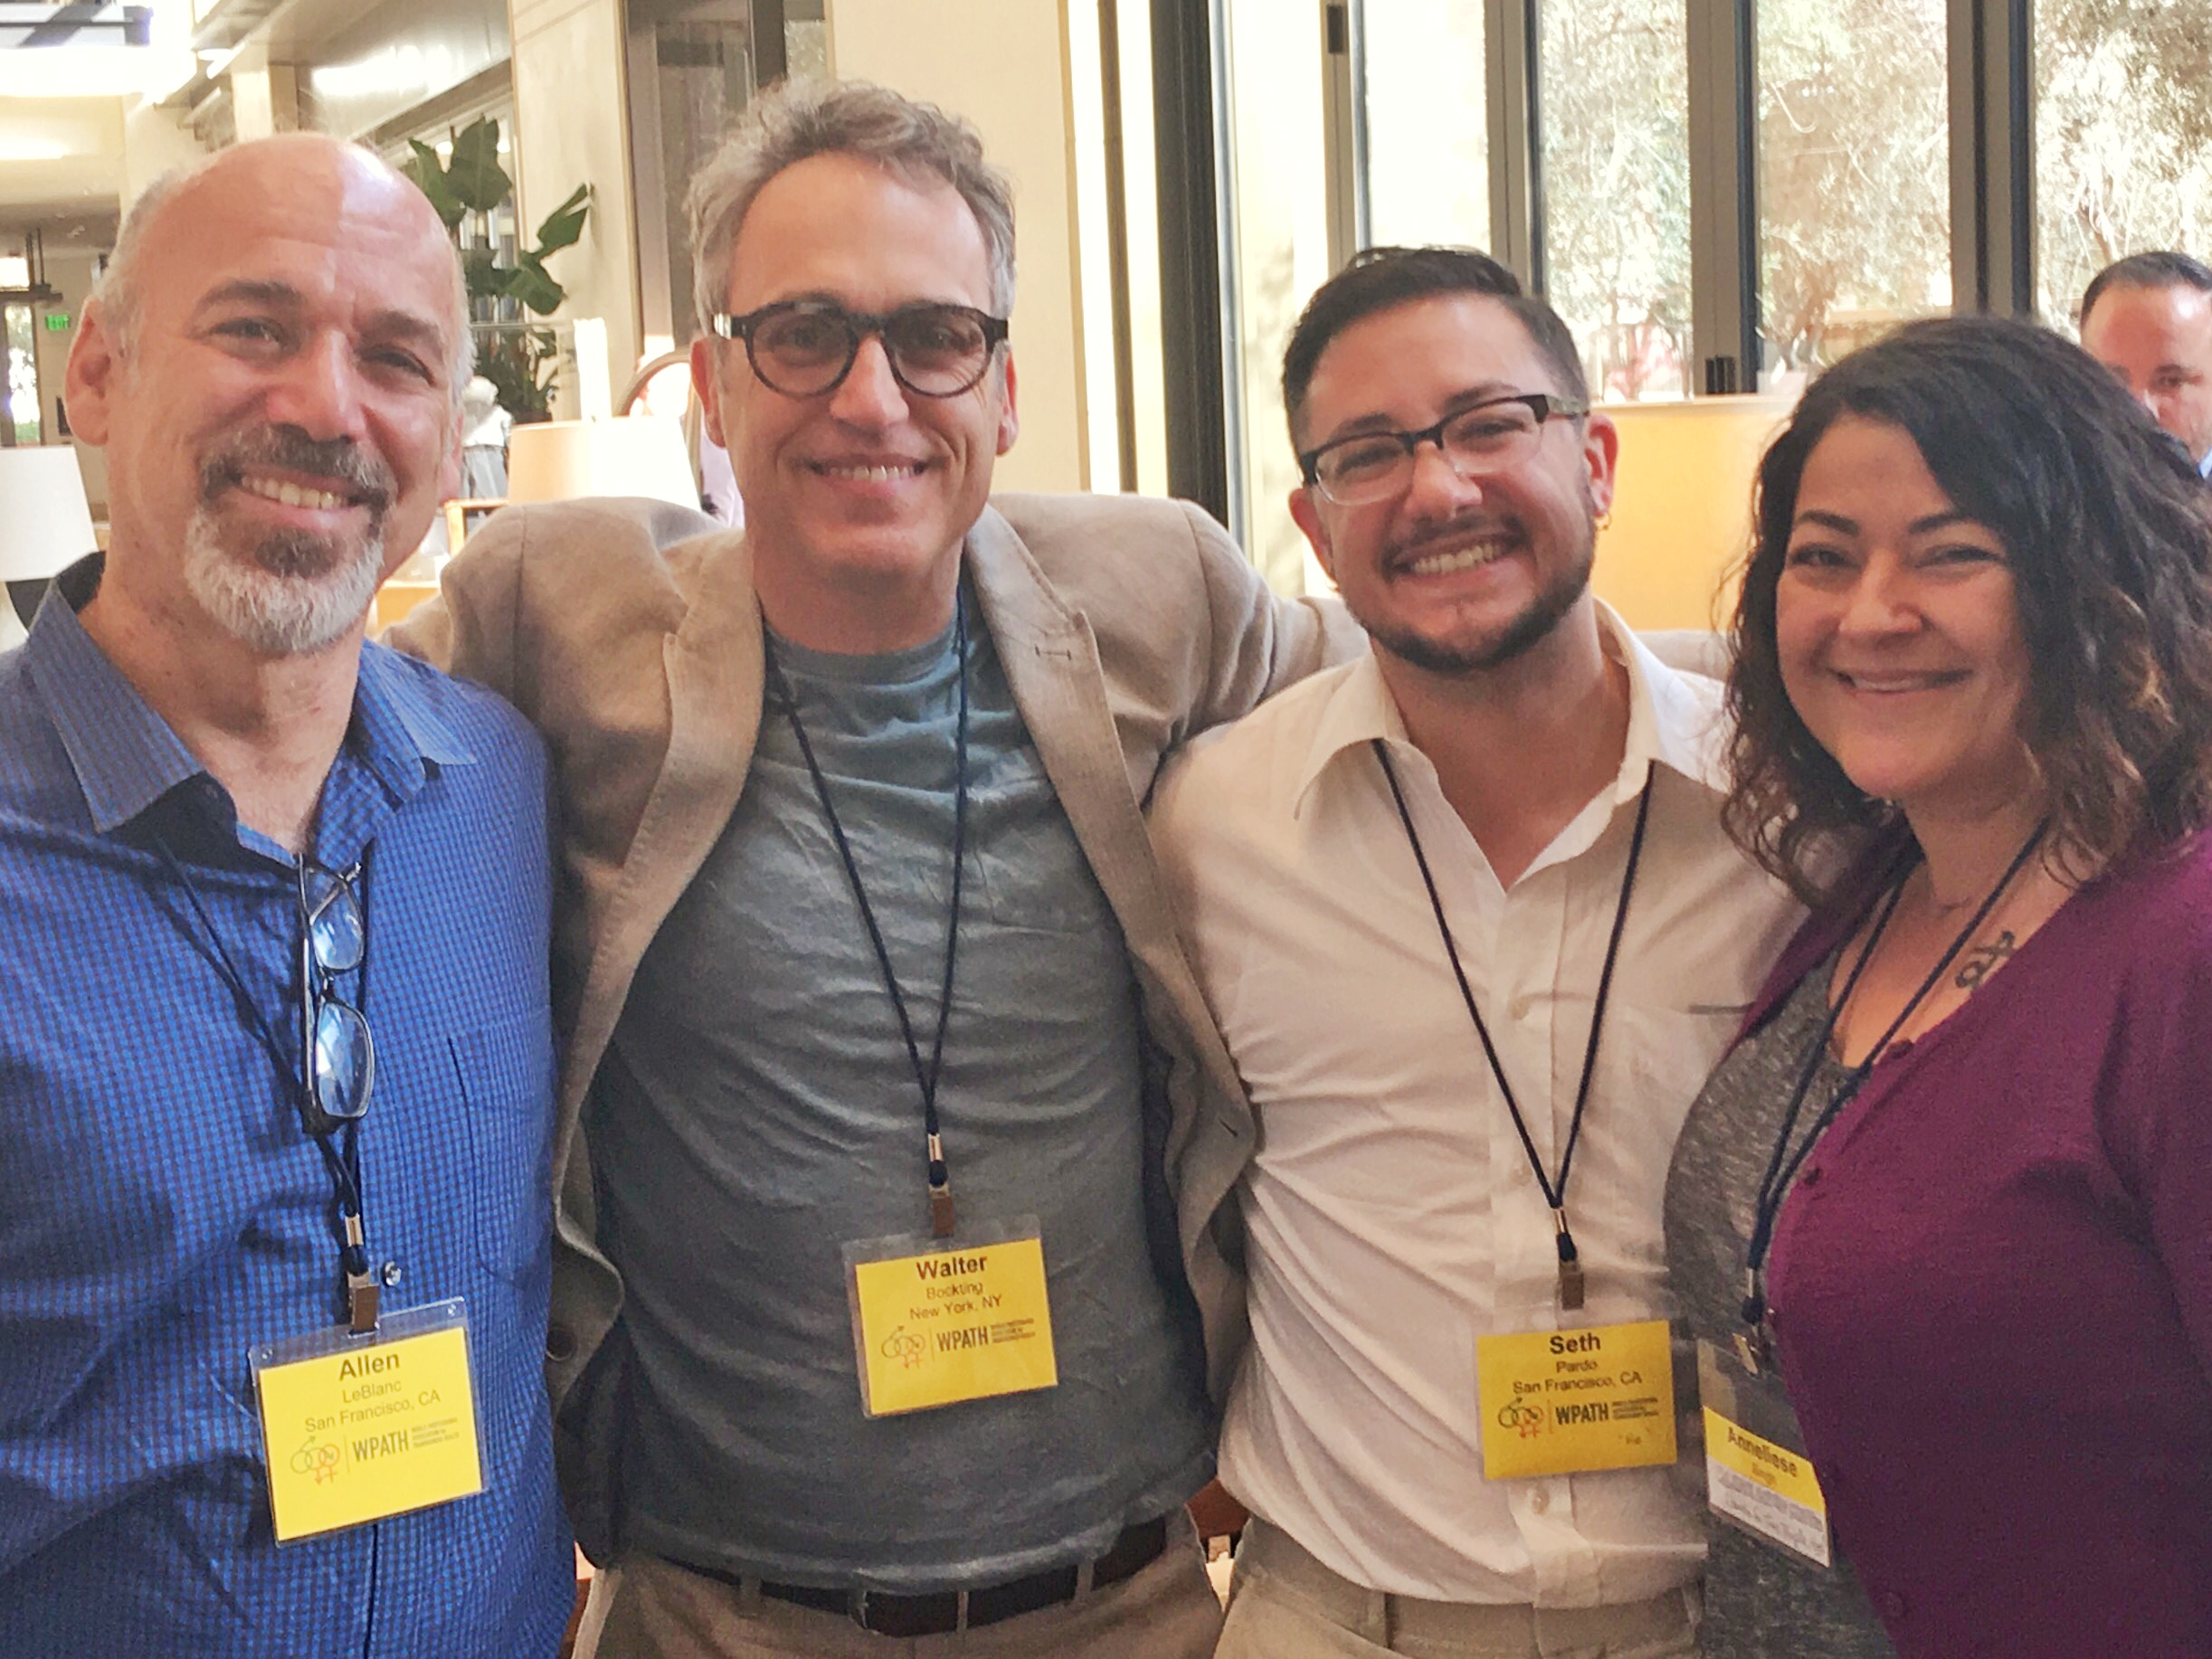 From left to right: Allen Leblanc, PhD -   Investigator, Project AFFIRM SF  , Walter Bockting, PhD - Principal Investigator, Project AFFIRM NYC, Seth Pardo, PhD -   Advisory Board Member - Project   AFFIRM   SF,   Anneliese Singh   - Investigator, Project AFFIRM ATL  .